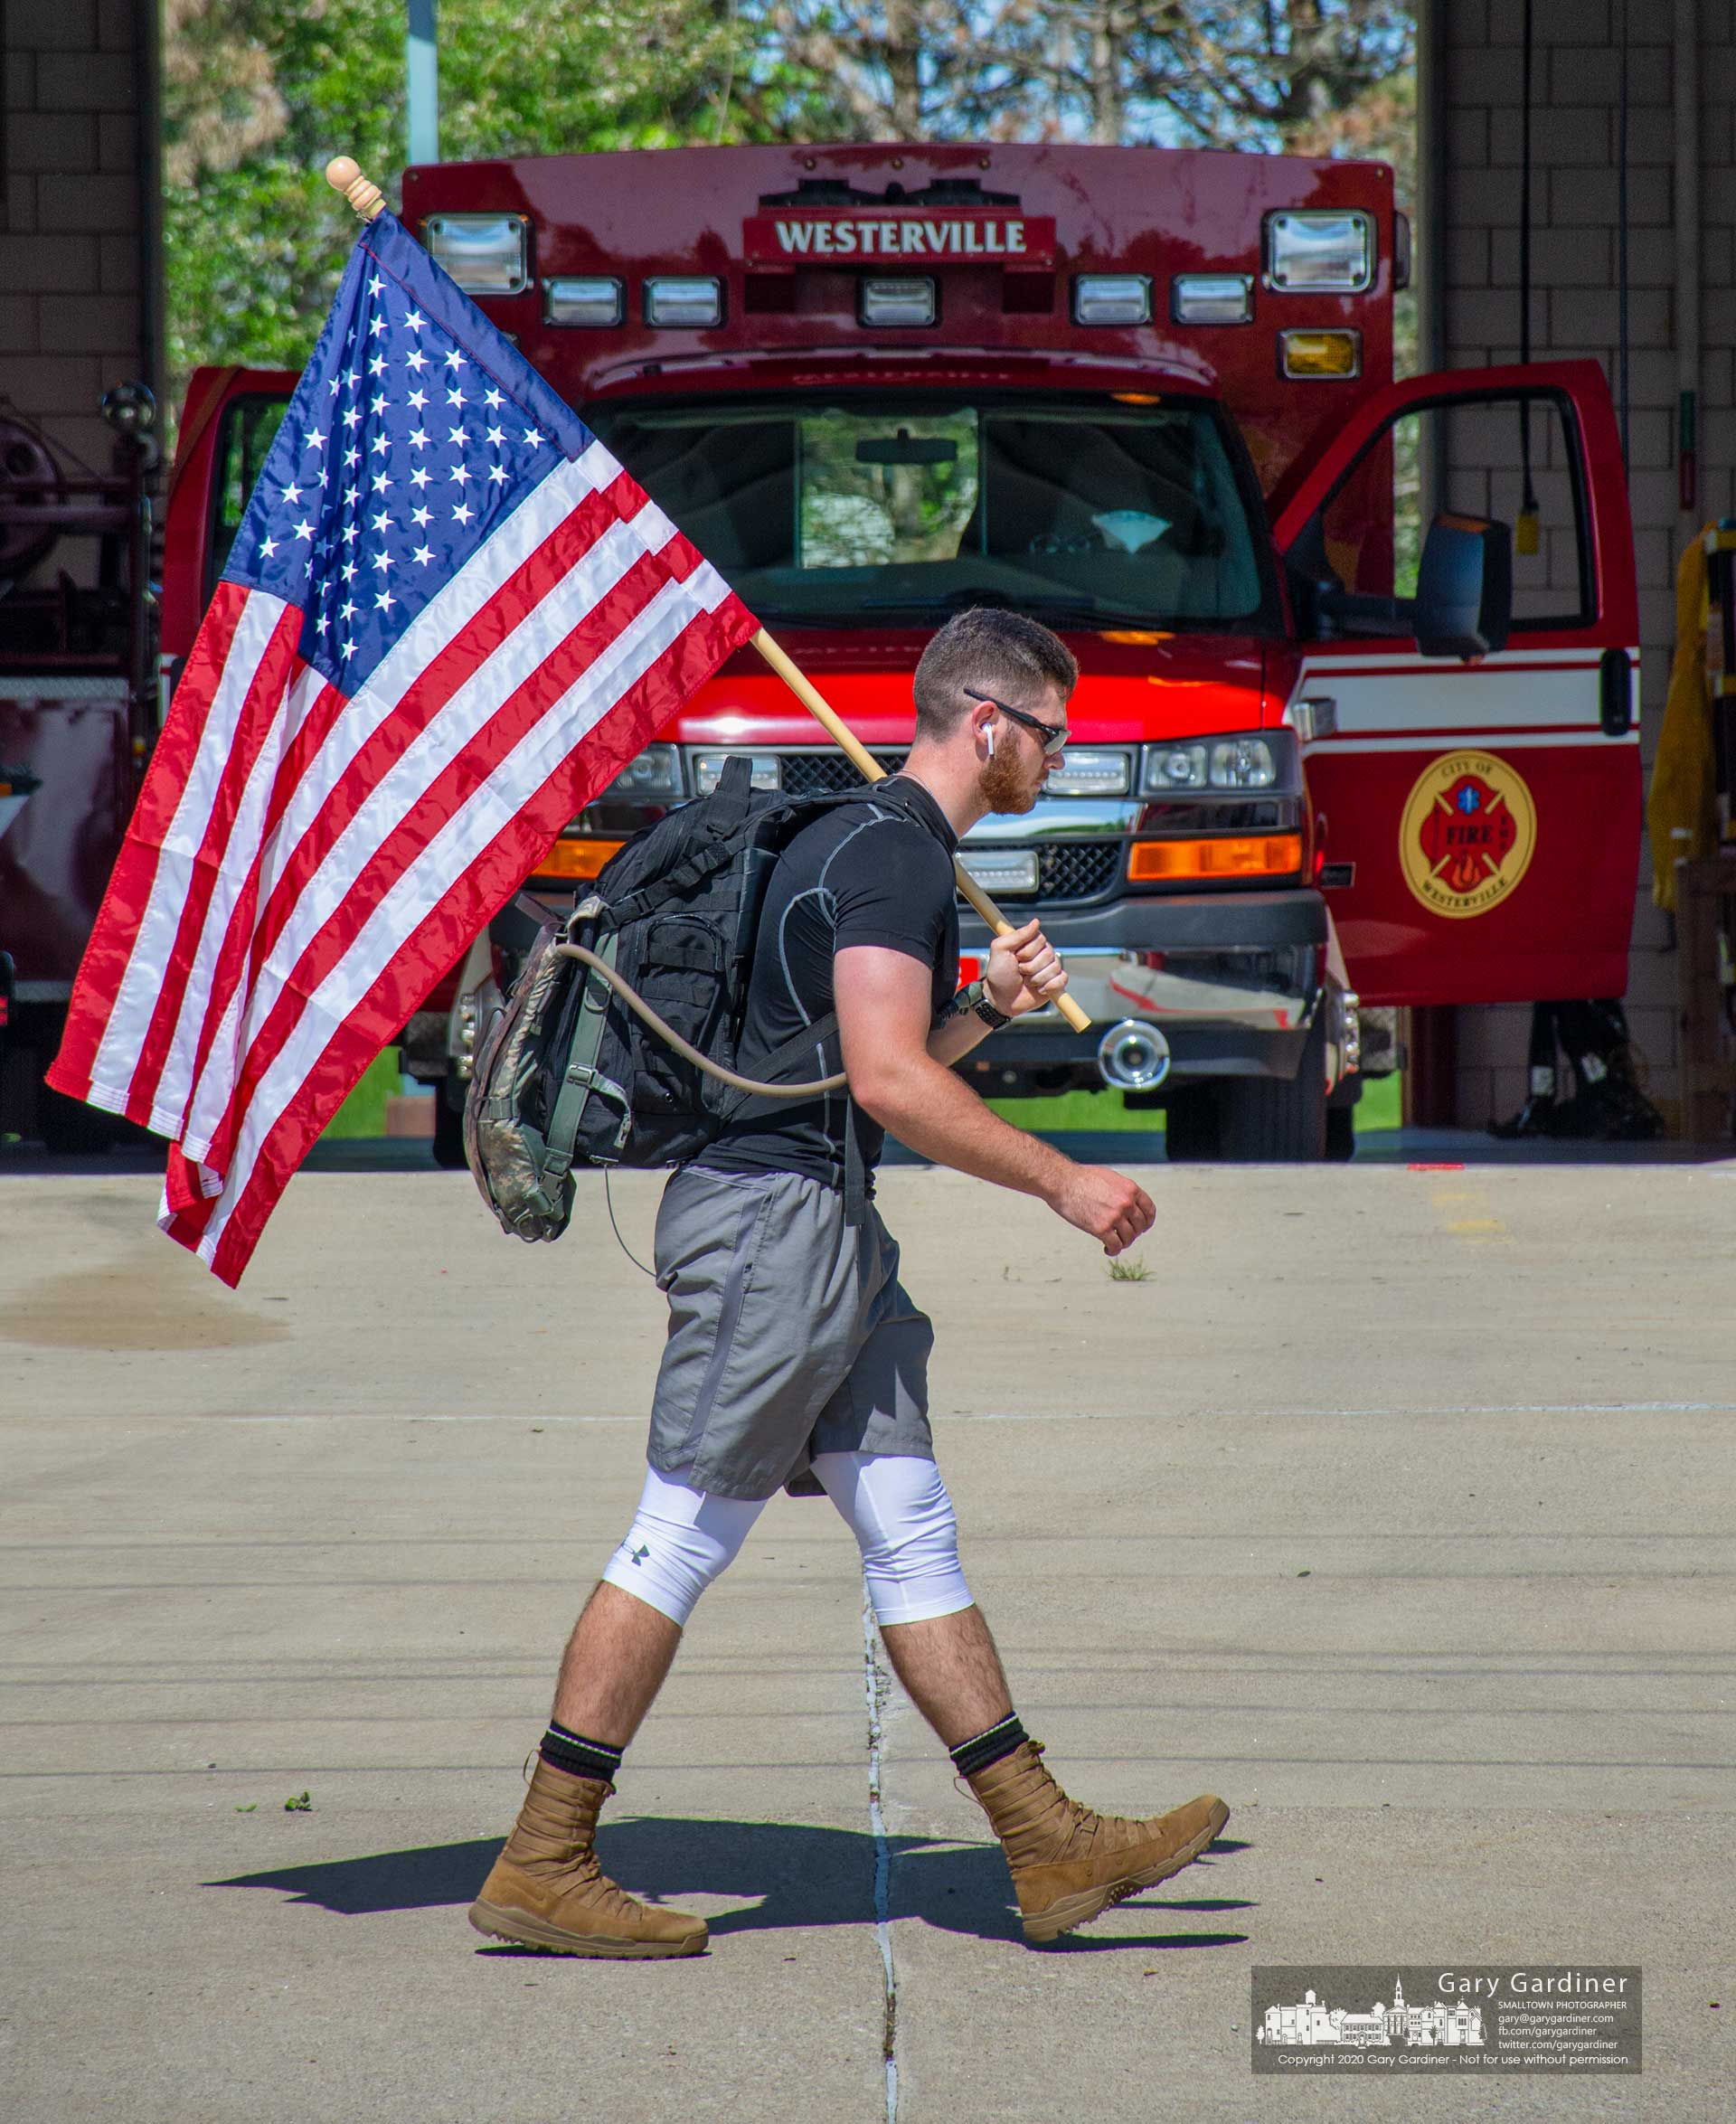 Ohio State junior and Army ROTC cadet Max Congrove passes Westerville Fire Station 113 about three-quarters of his way through an 11-mile hike wearing a 50-pound pack to honor American war dead on Memorial Day. My Final Photo for May 25, 2020.